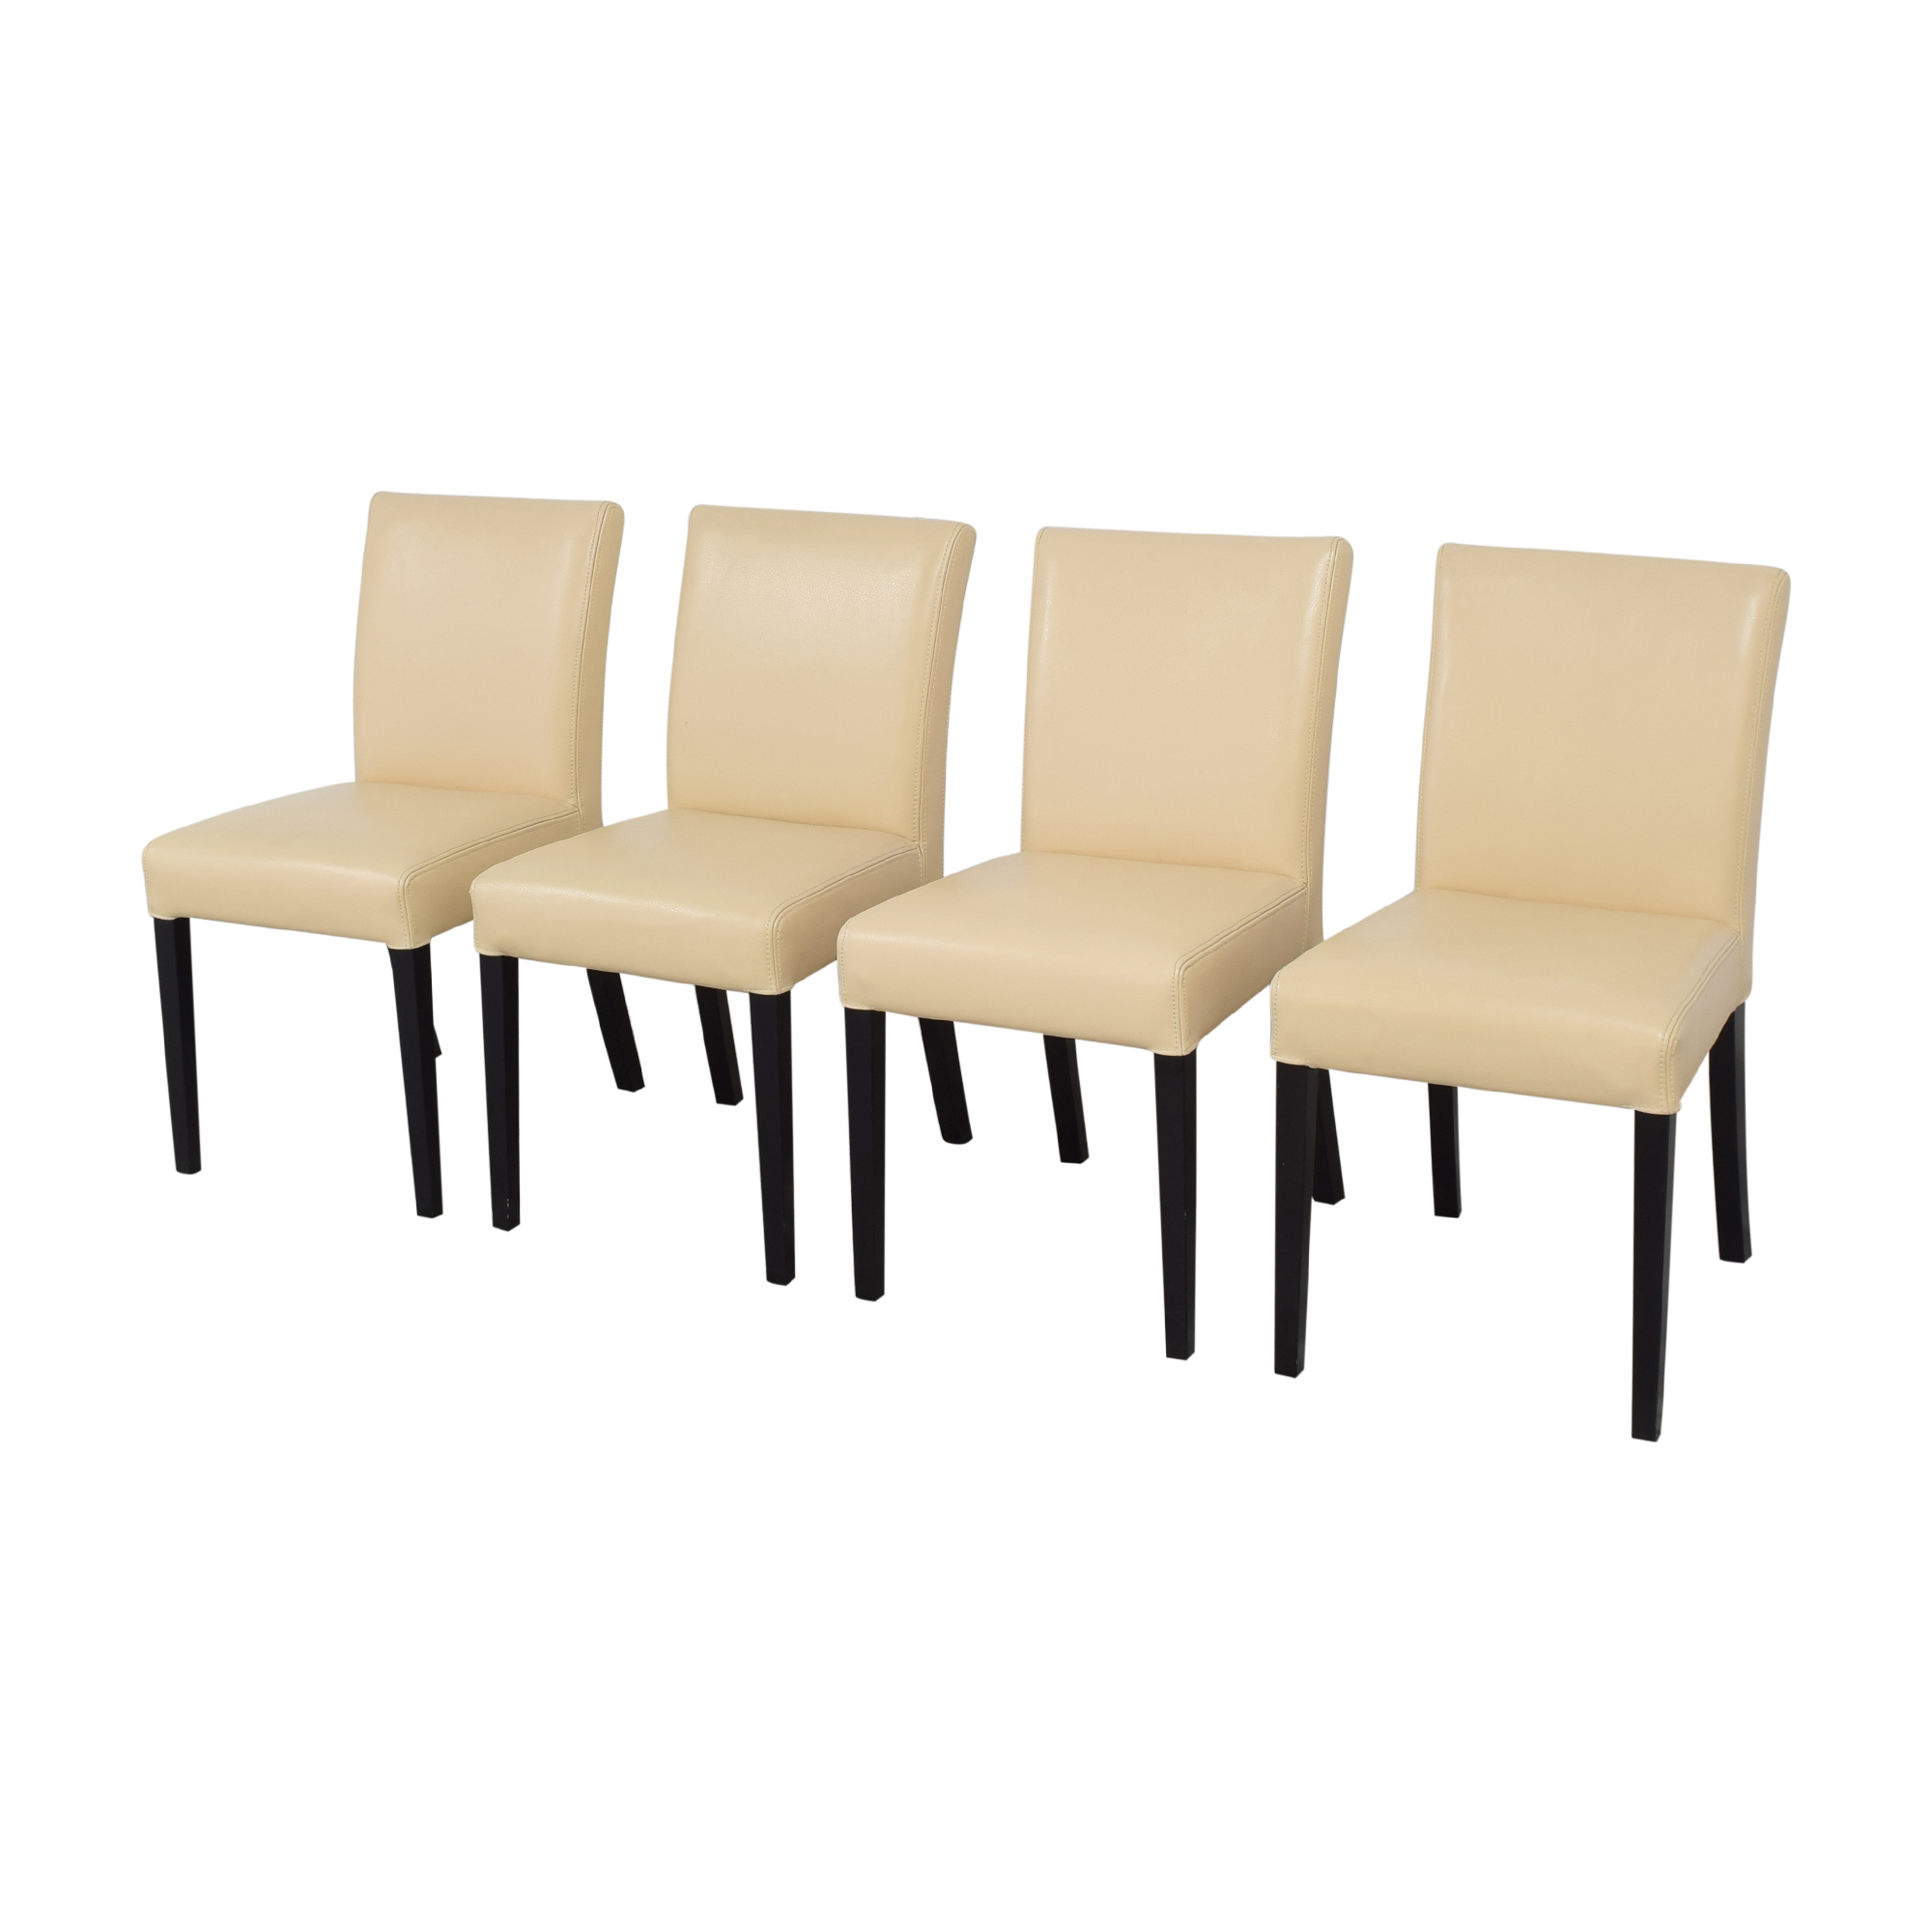 Crate & Barrel Lowe Dining Side Chairs / Chairs